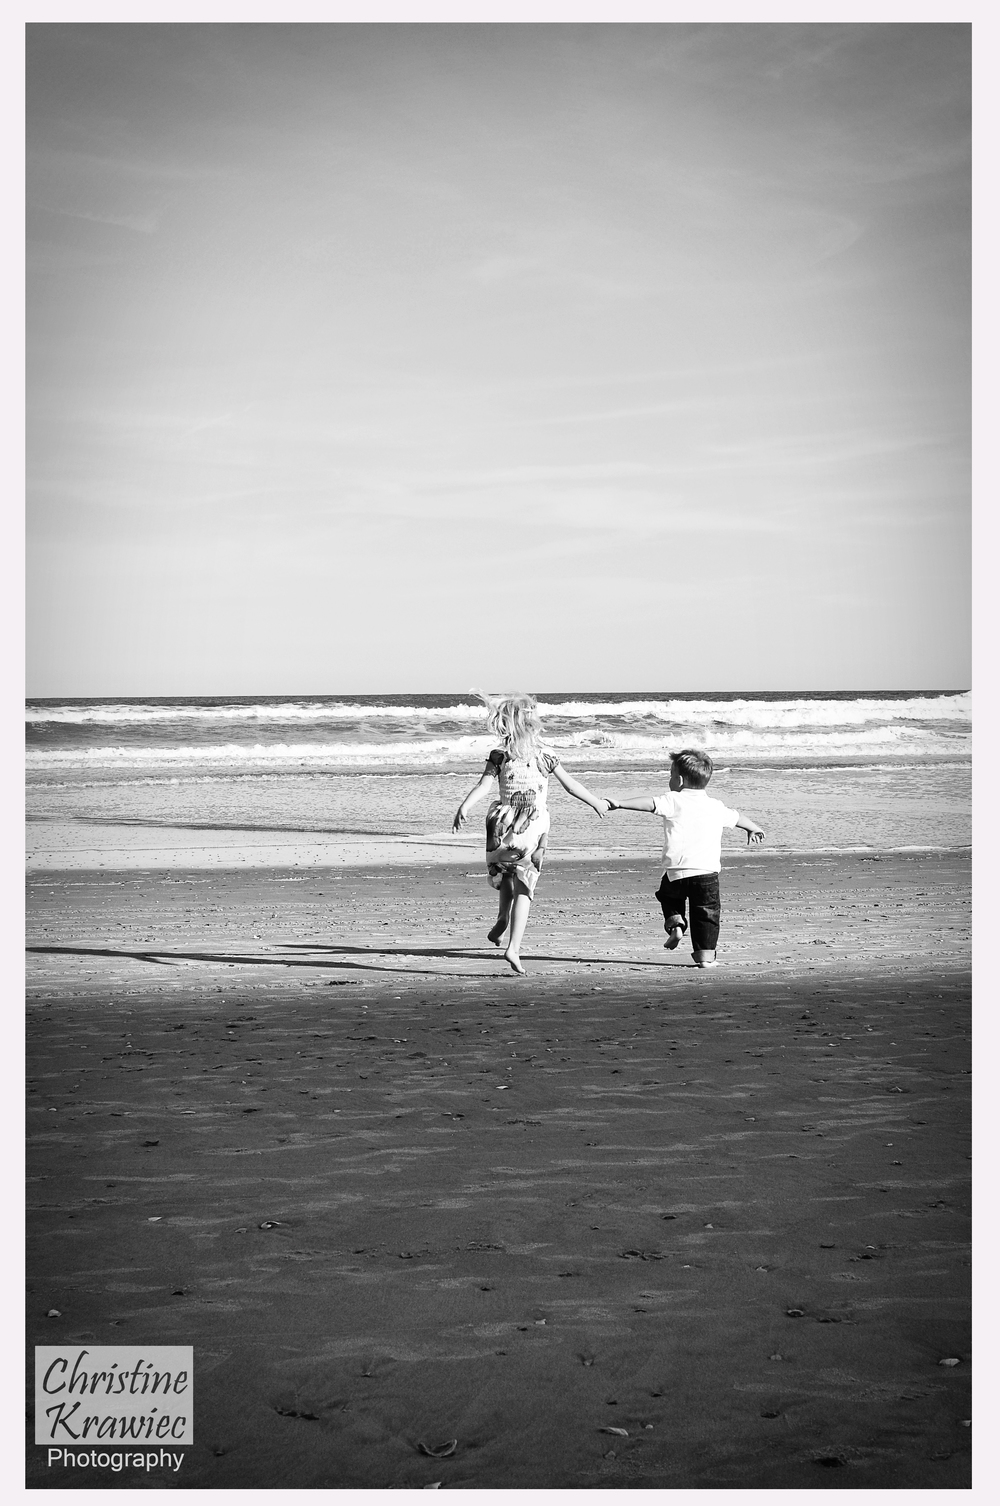 Christine Krawiec Photography - Margate Beach Photographer